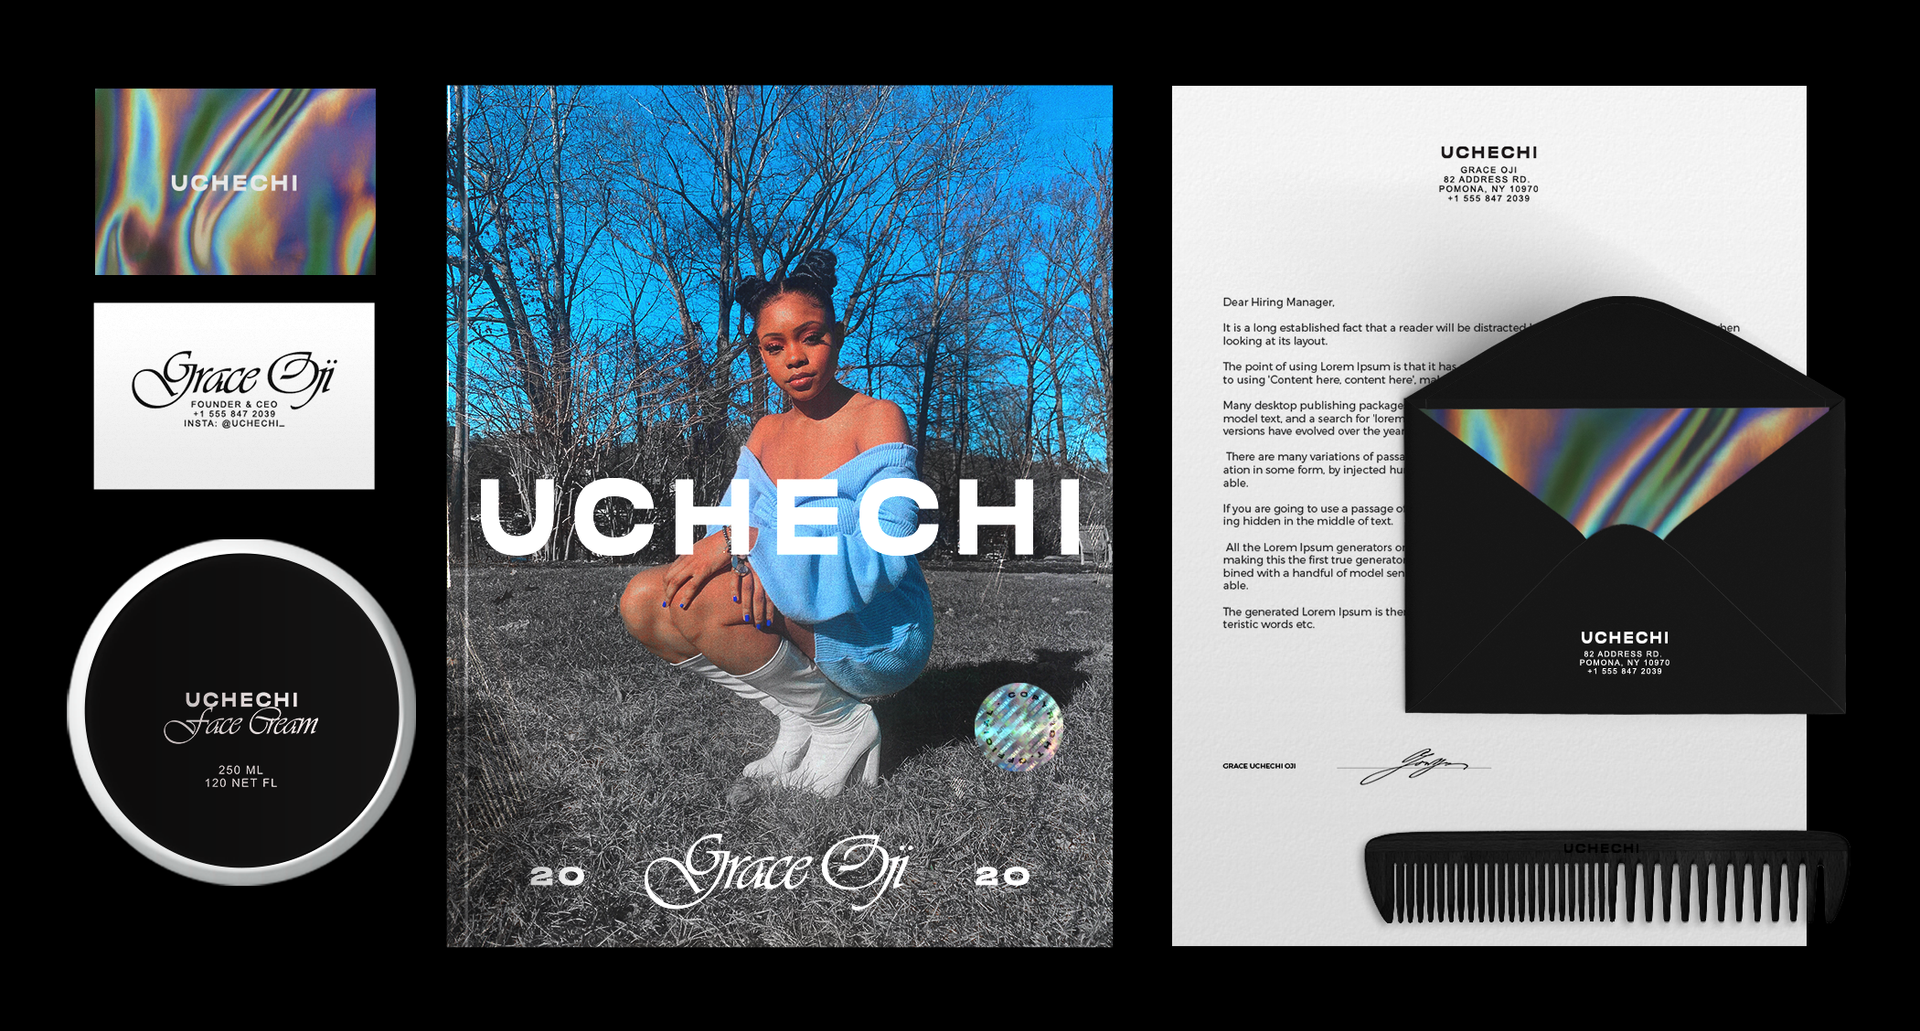 UCHECHI_Stationary 02 copy.png